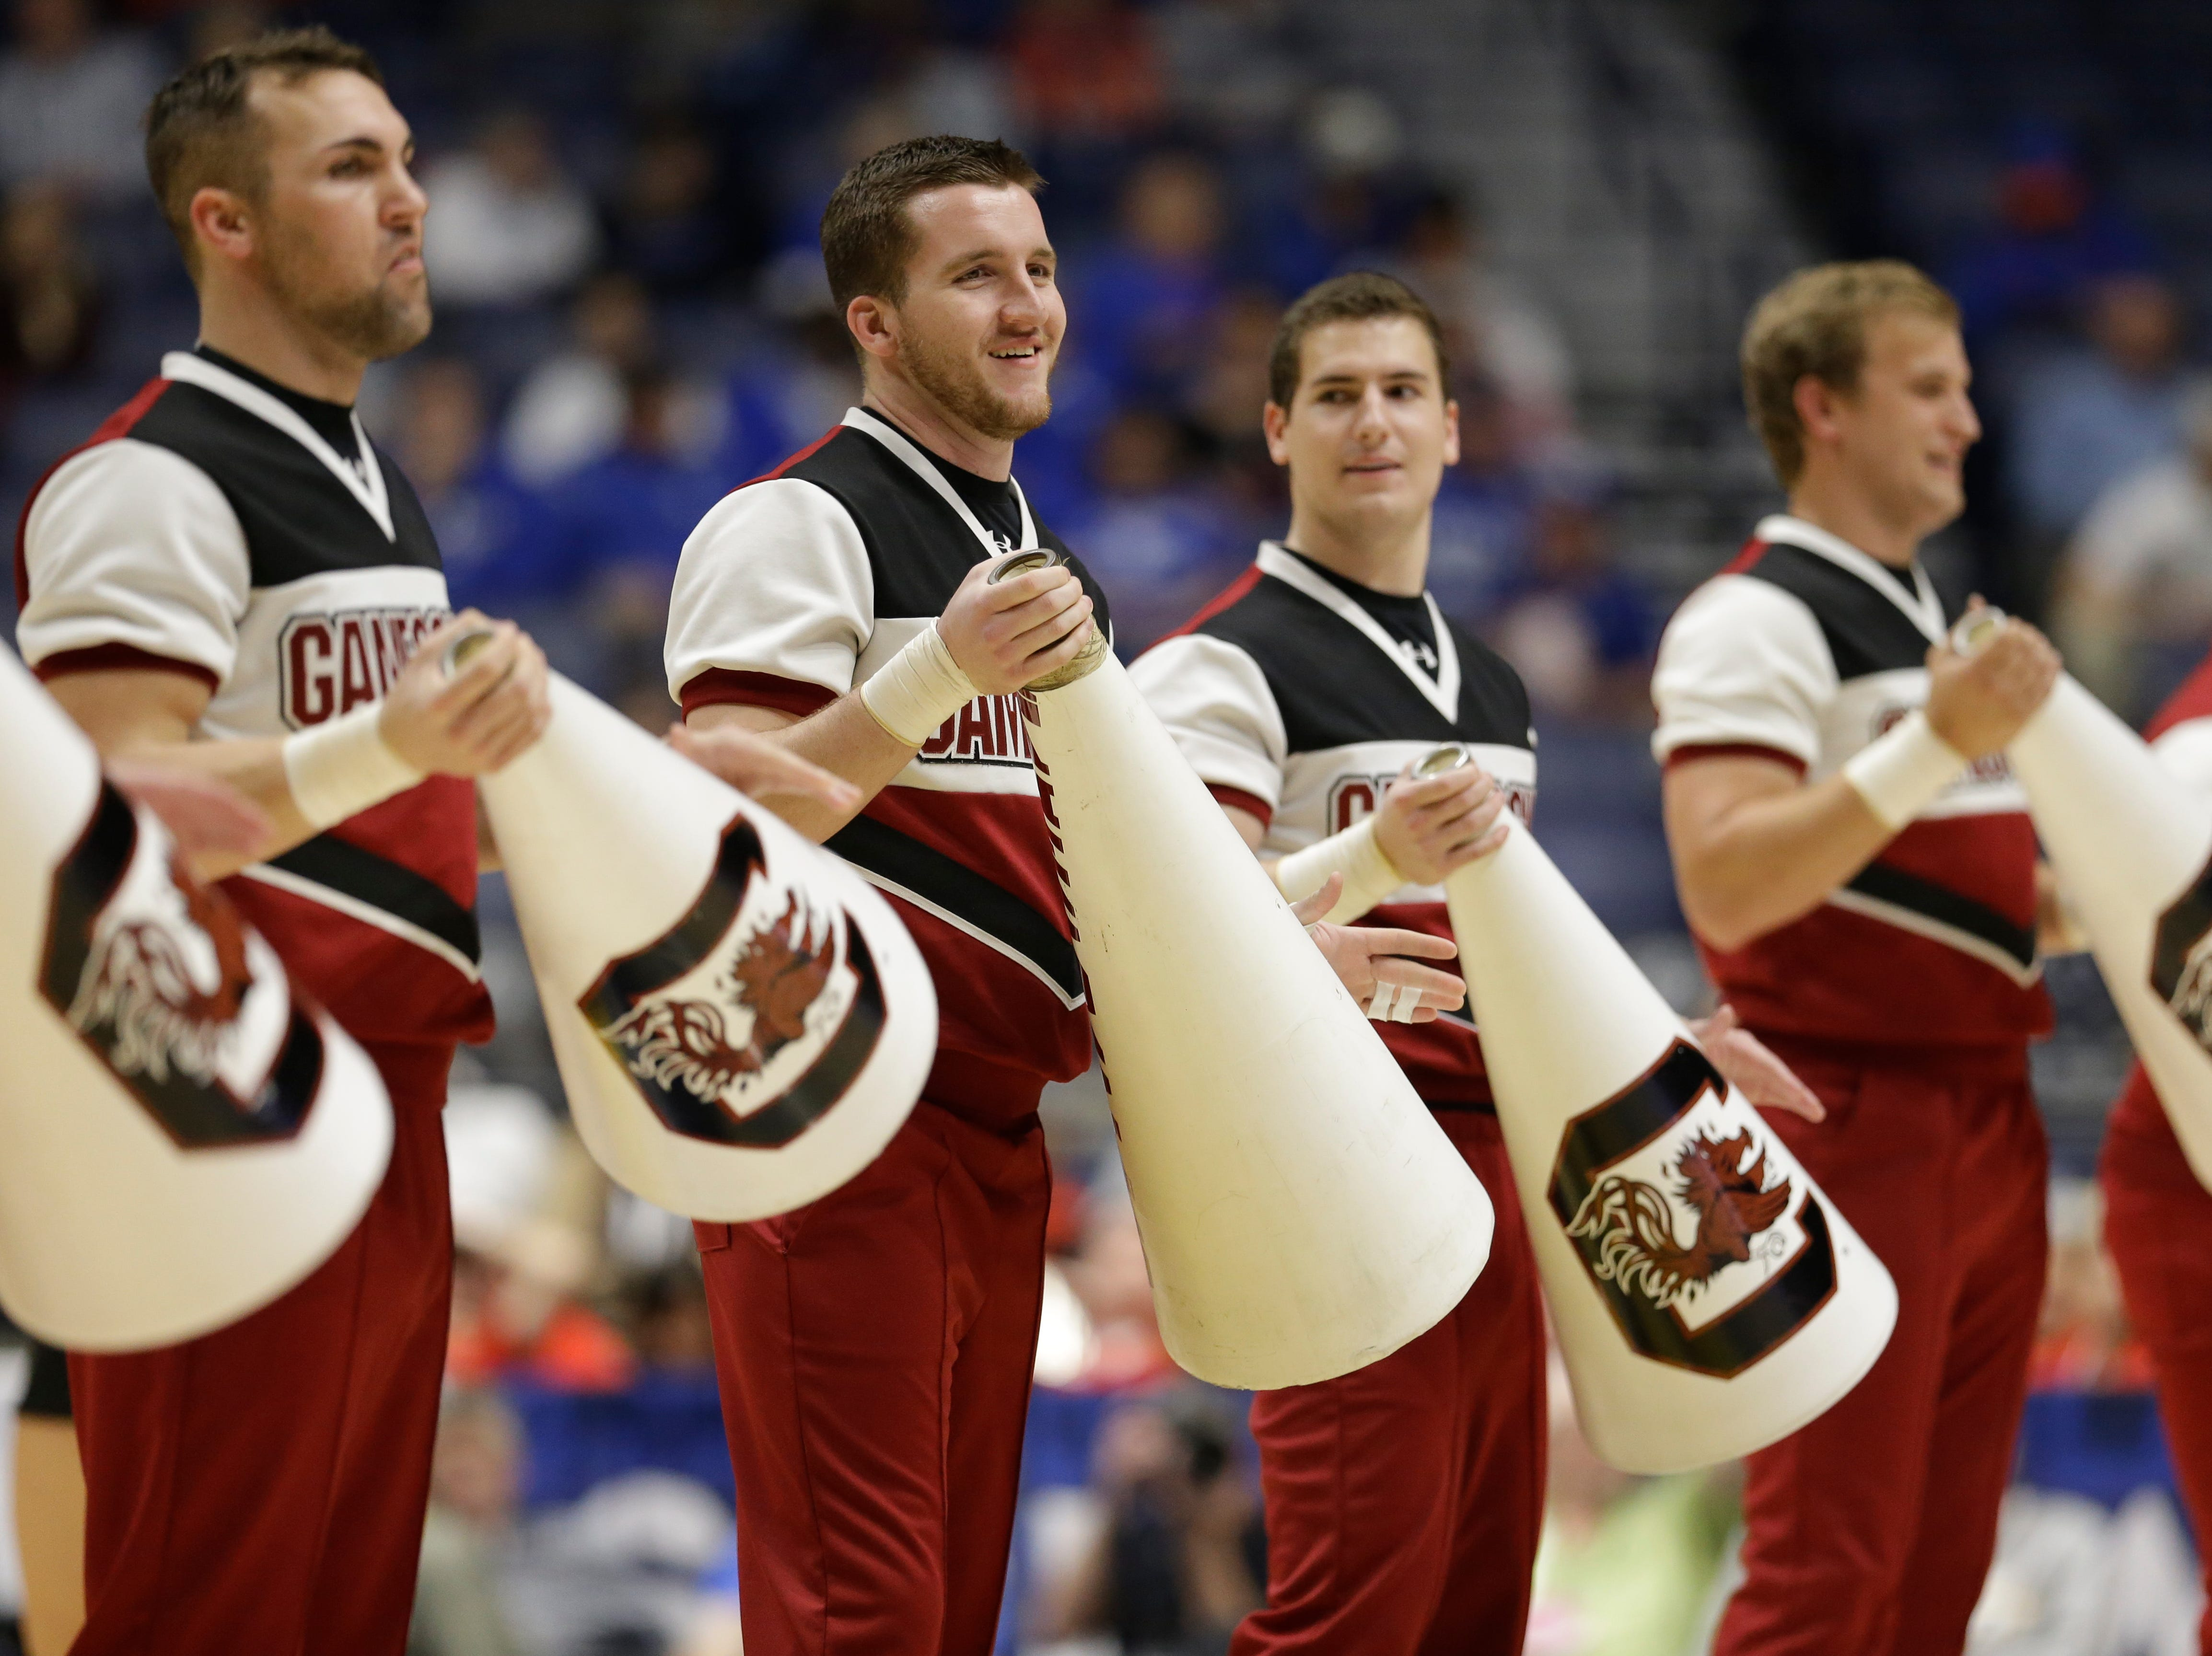 South Carolina cheerleaders perform during the first half of an NCAA college basketball game against Georgia in the Southeastern Conference tournament in Nashville, Tenn., Friday, March 11, 2016. (AP Photo/Mark Humphrey)